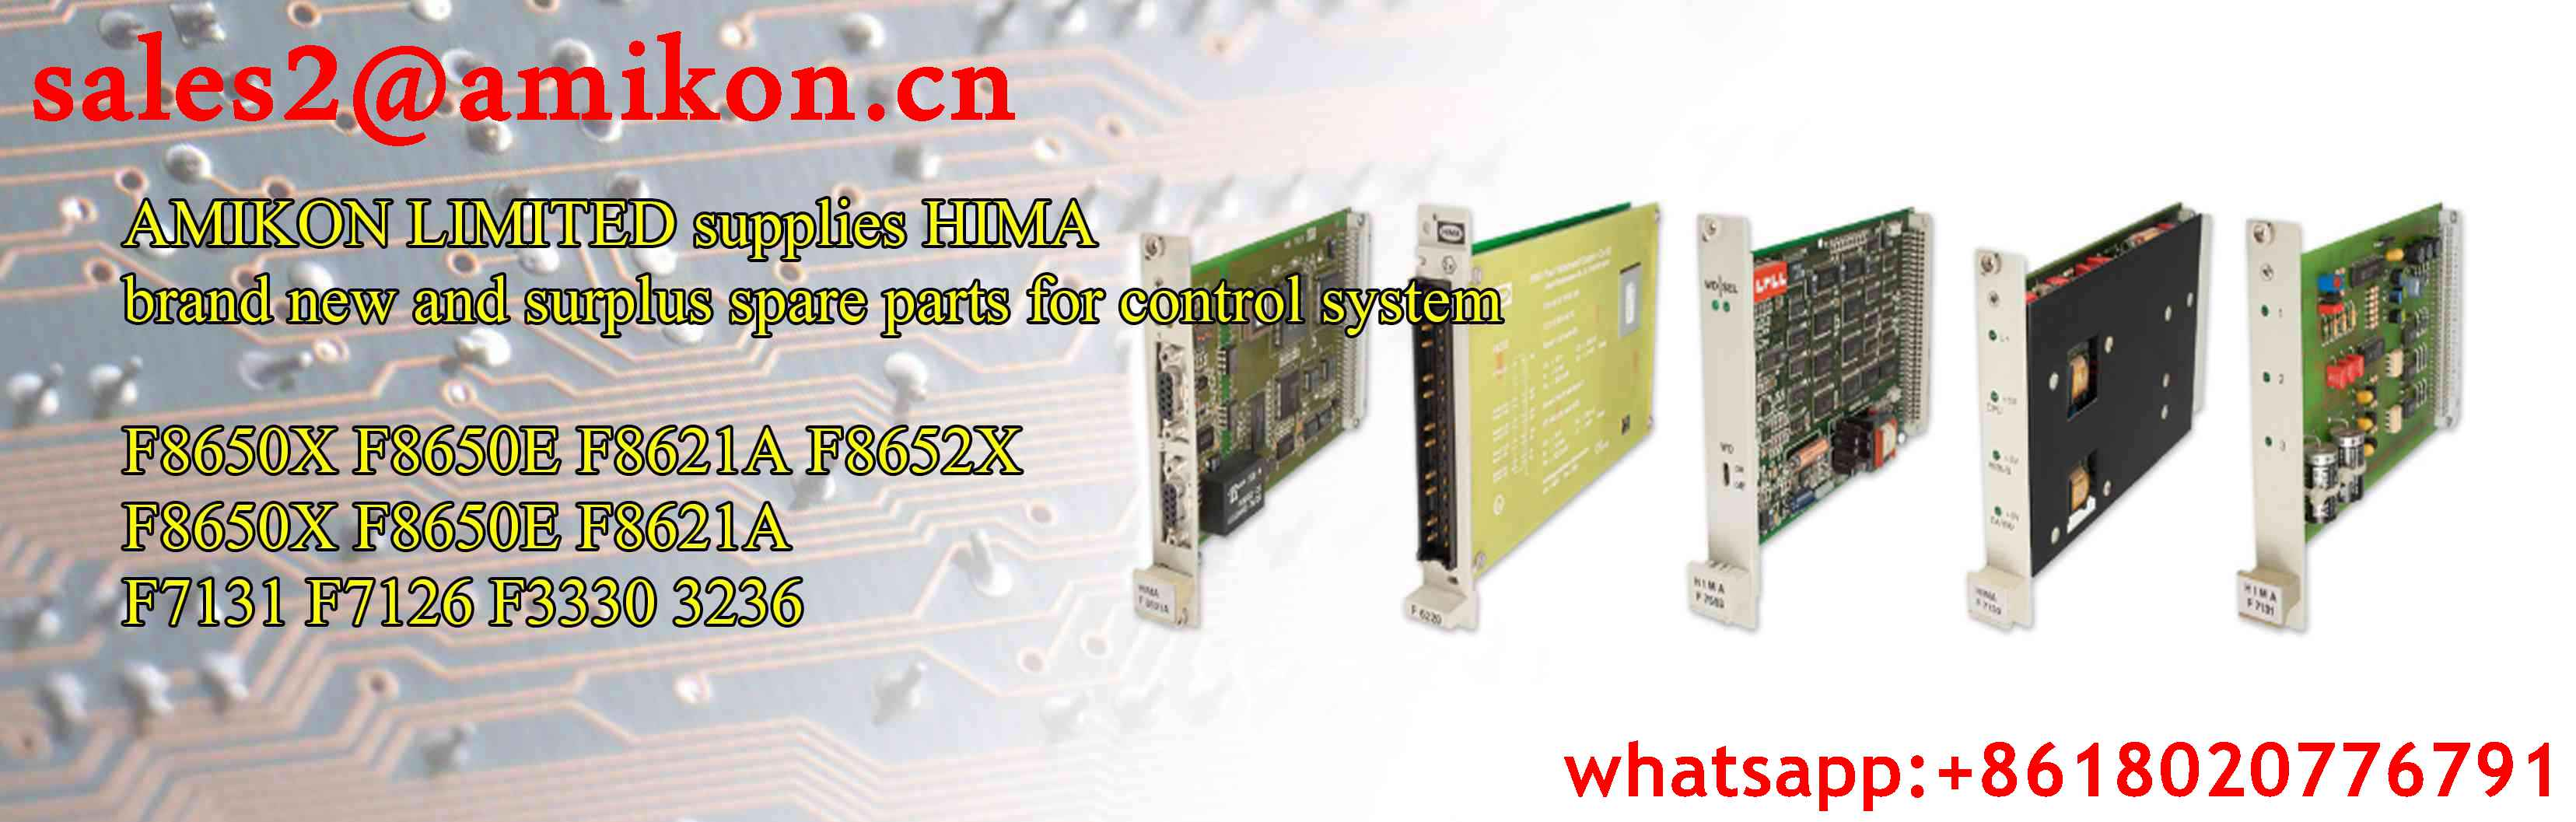 ABB 6369901-298 DSQC 306 Computer board PLC DCSIndustry Control System Module - China